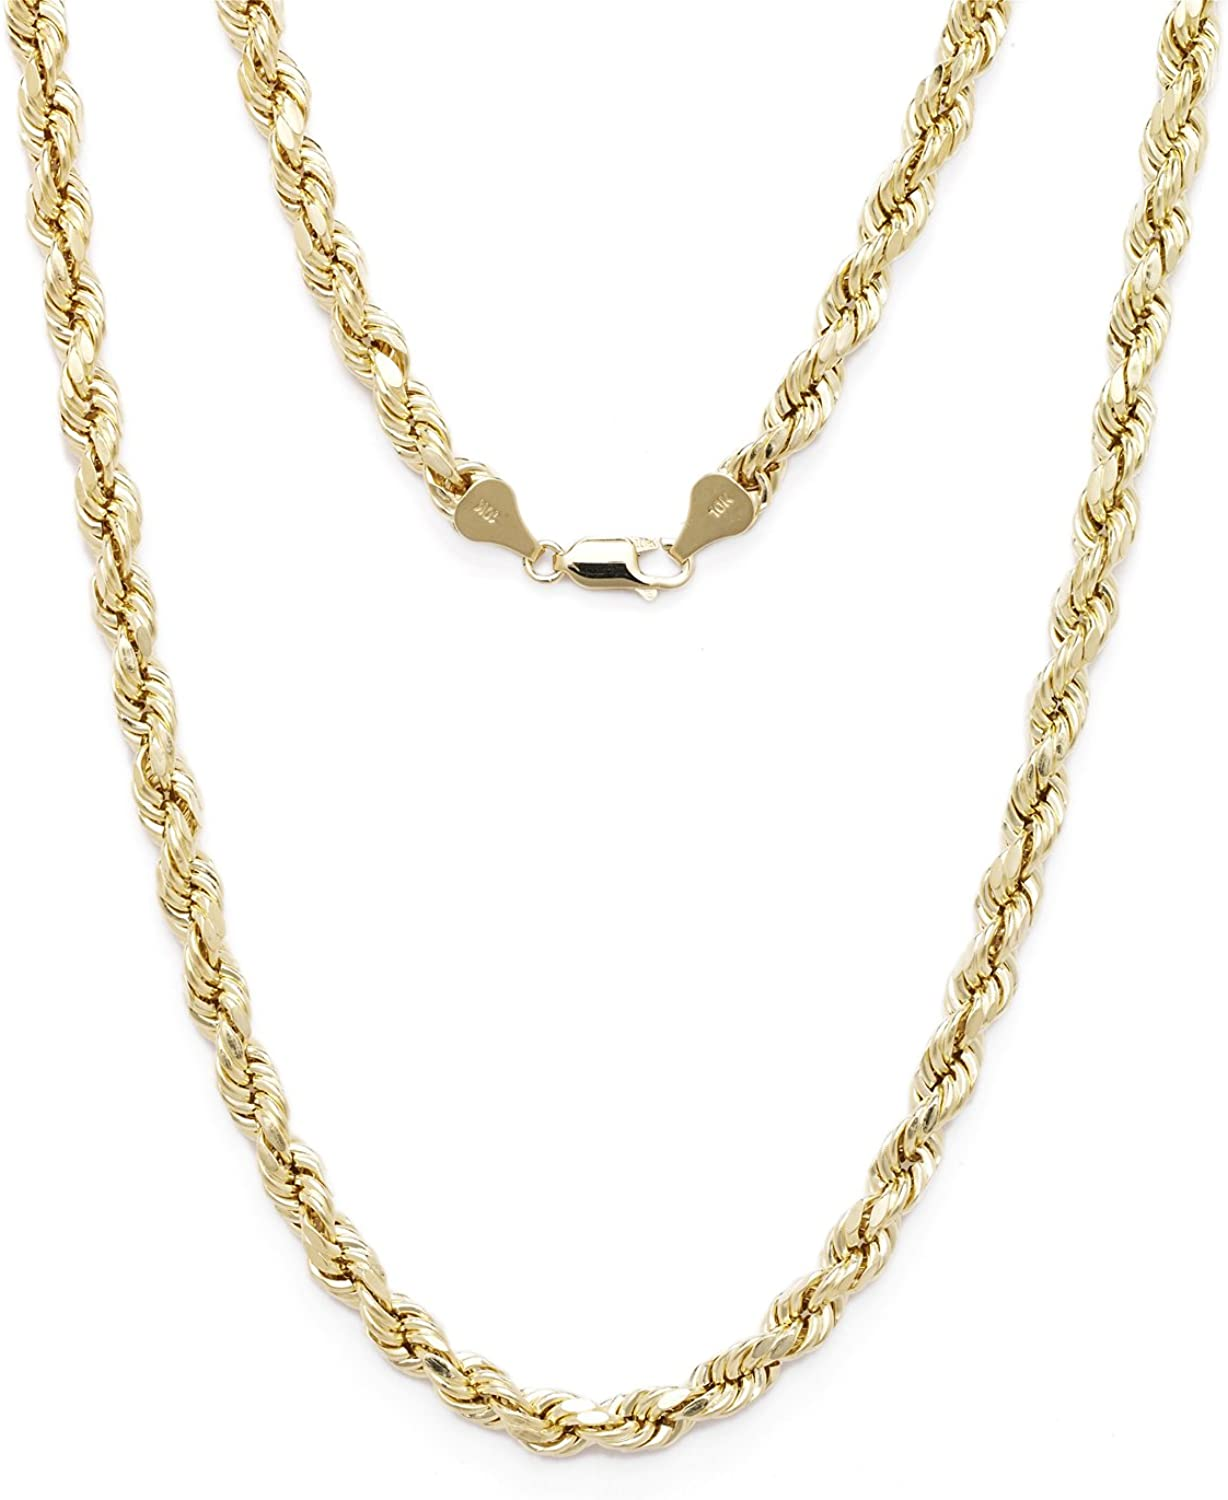 3mm Floreo 10k Yellow Gold Diamond Cut Hollow Rope Chain Necklace with Lobster Claw Clasp for Men and Women